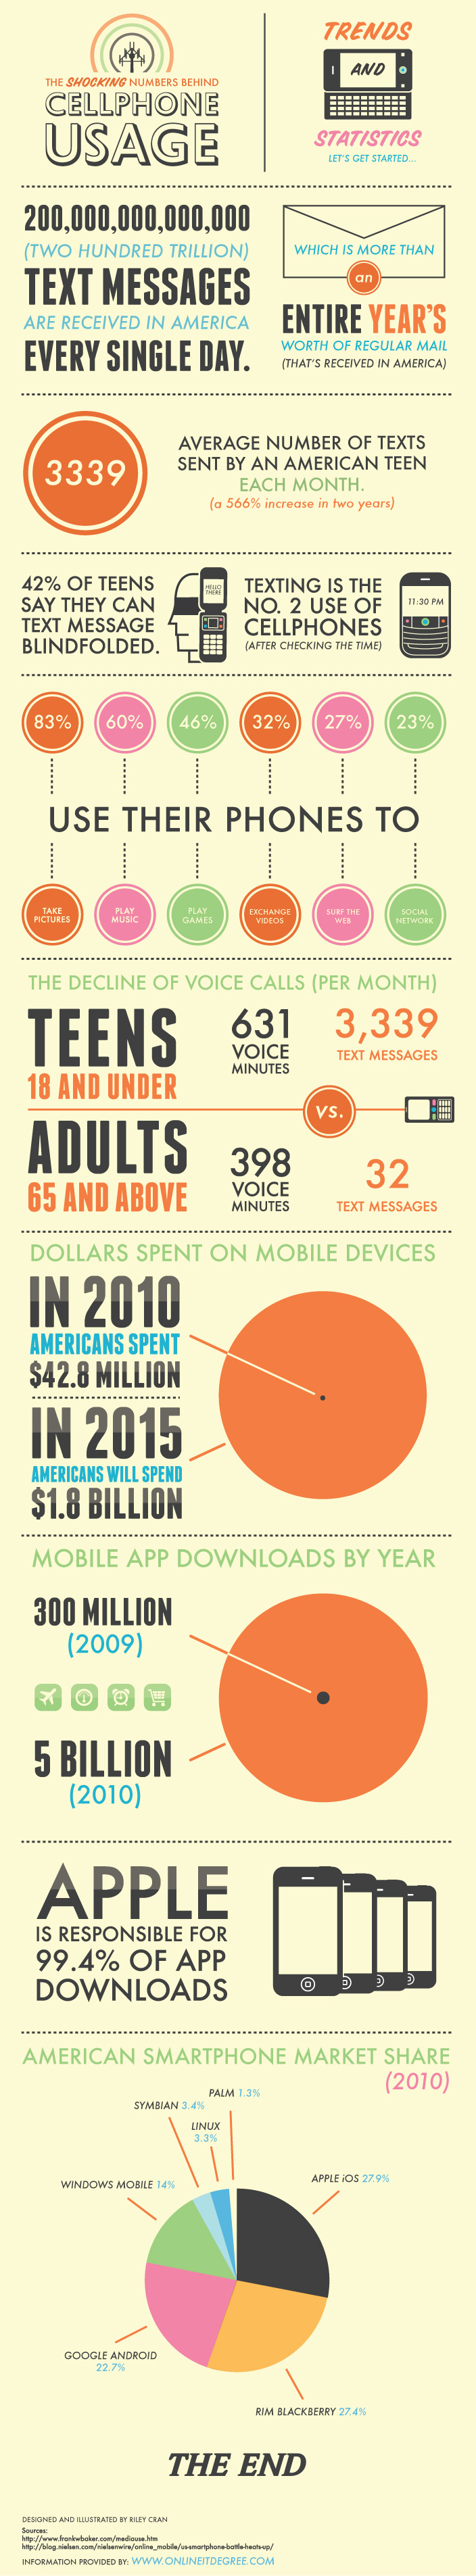 cellphone usage The Shocking Numbers Behind Cellphone Usage [Infographic]